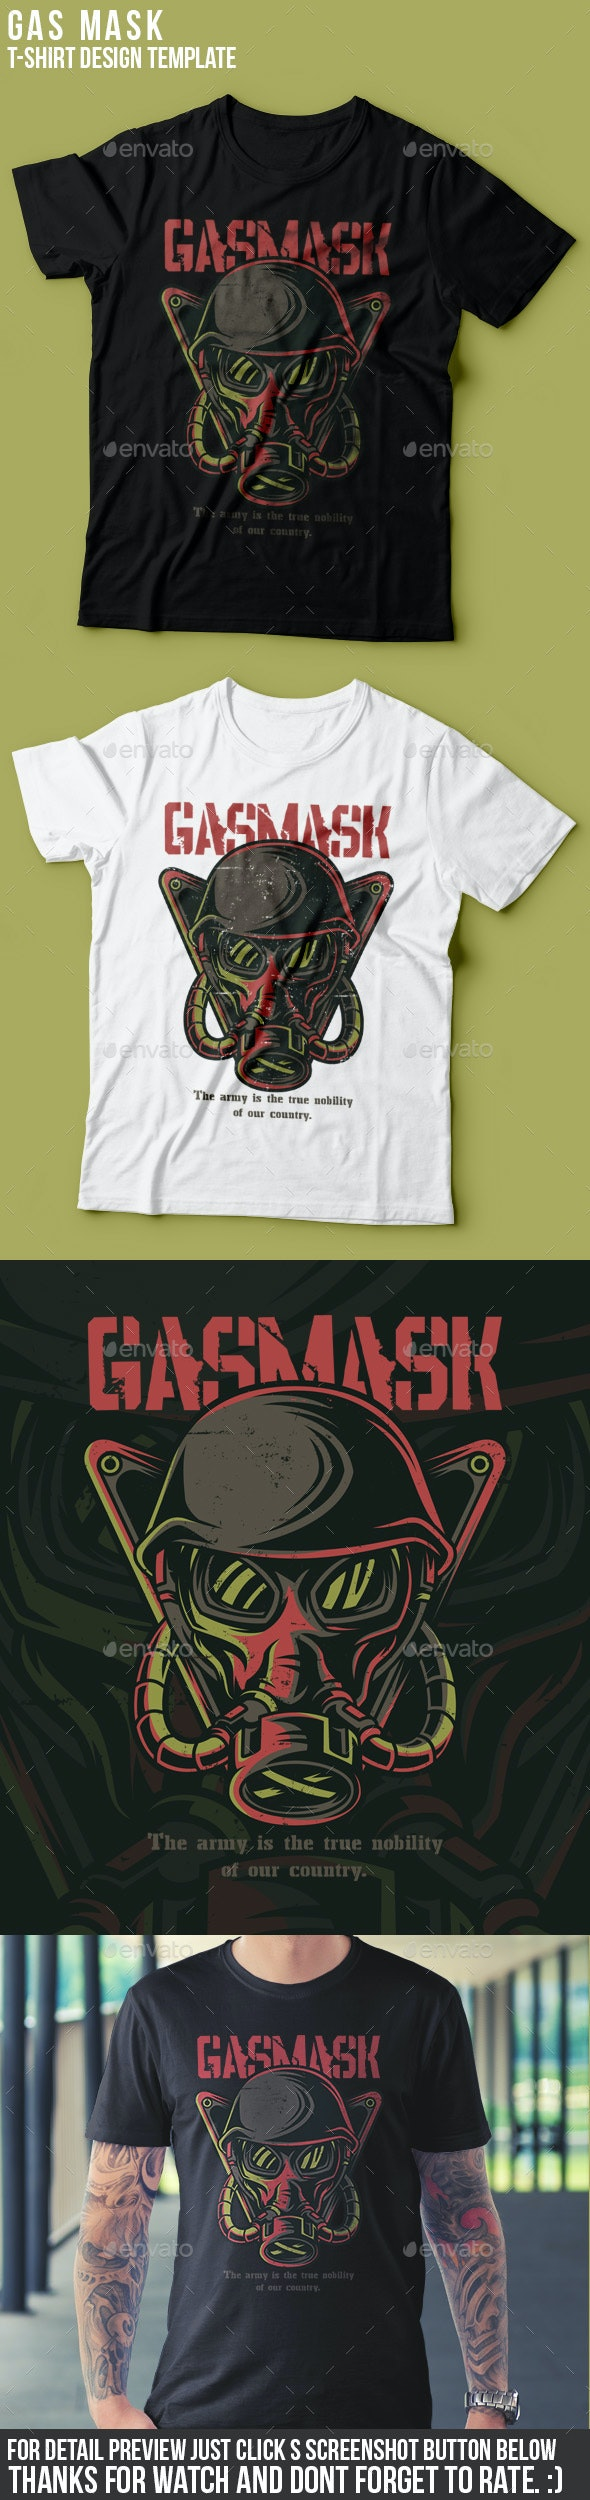 Gas Mask T-Shirt Design - Grunge Designs